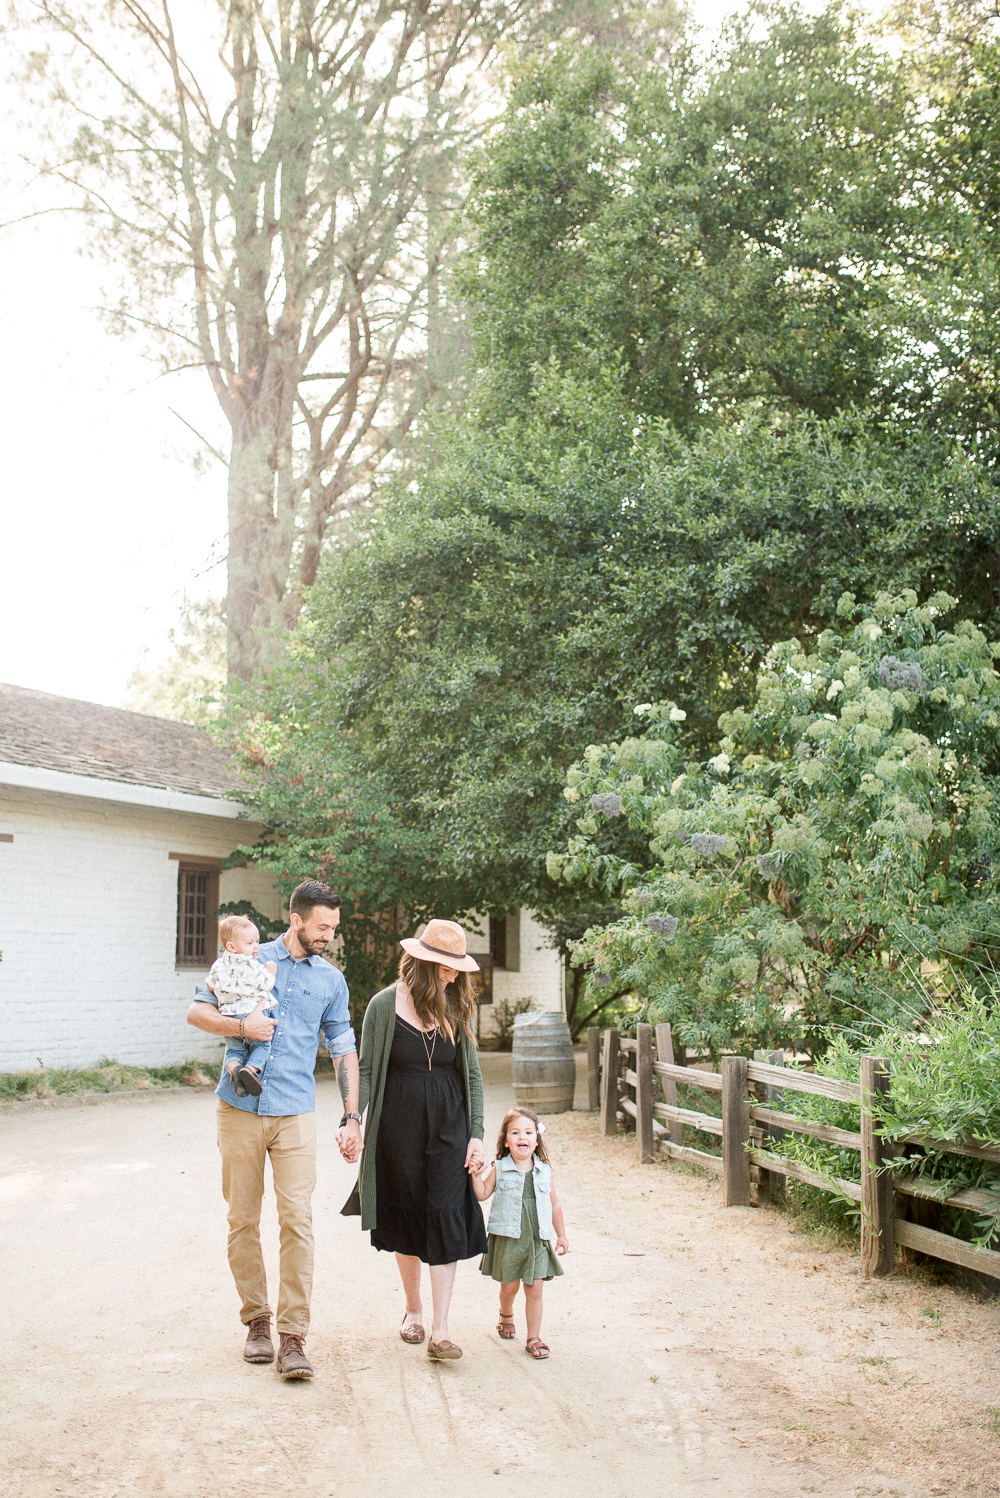 Heather Selzer - Family walking through Sutter's Fort in Sacramento, CA